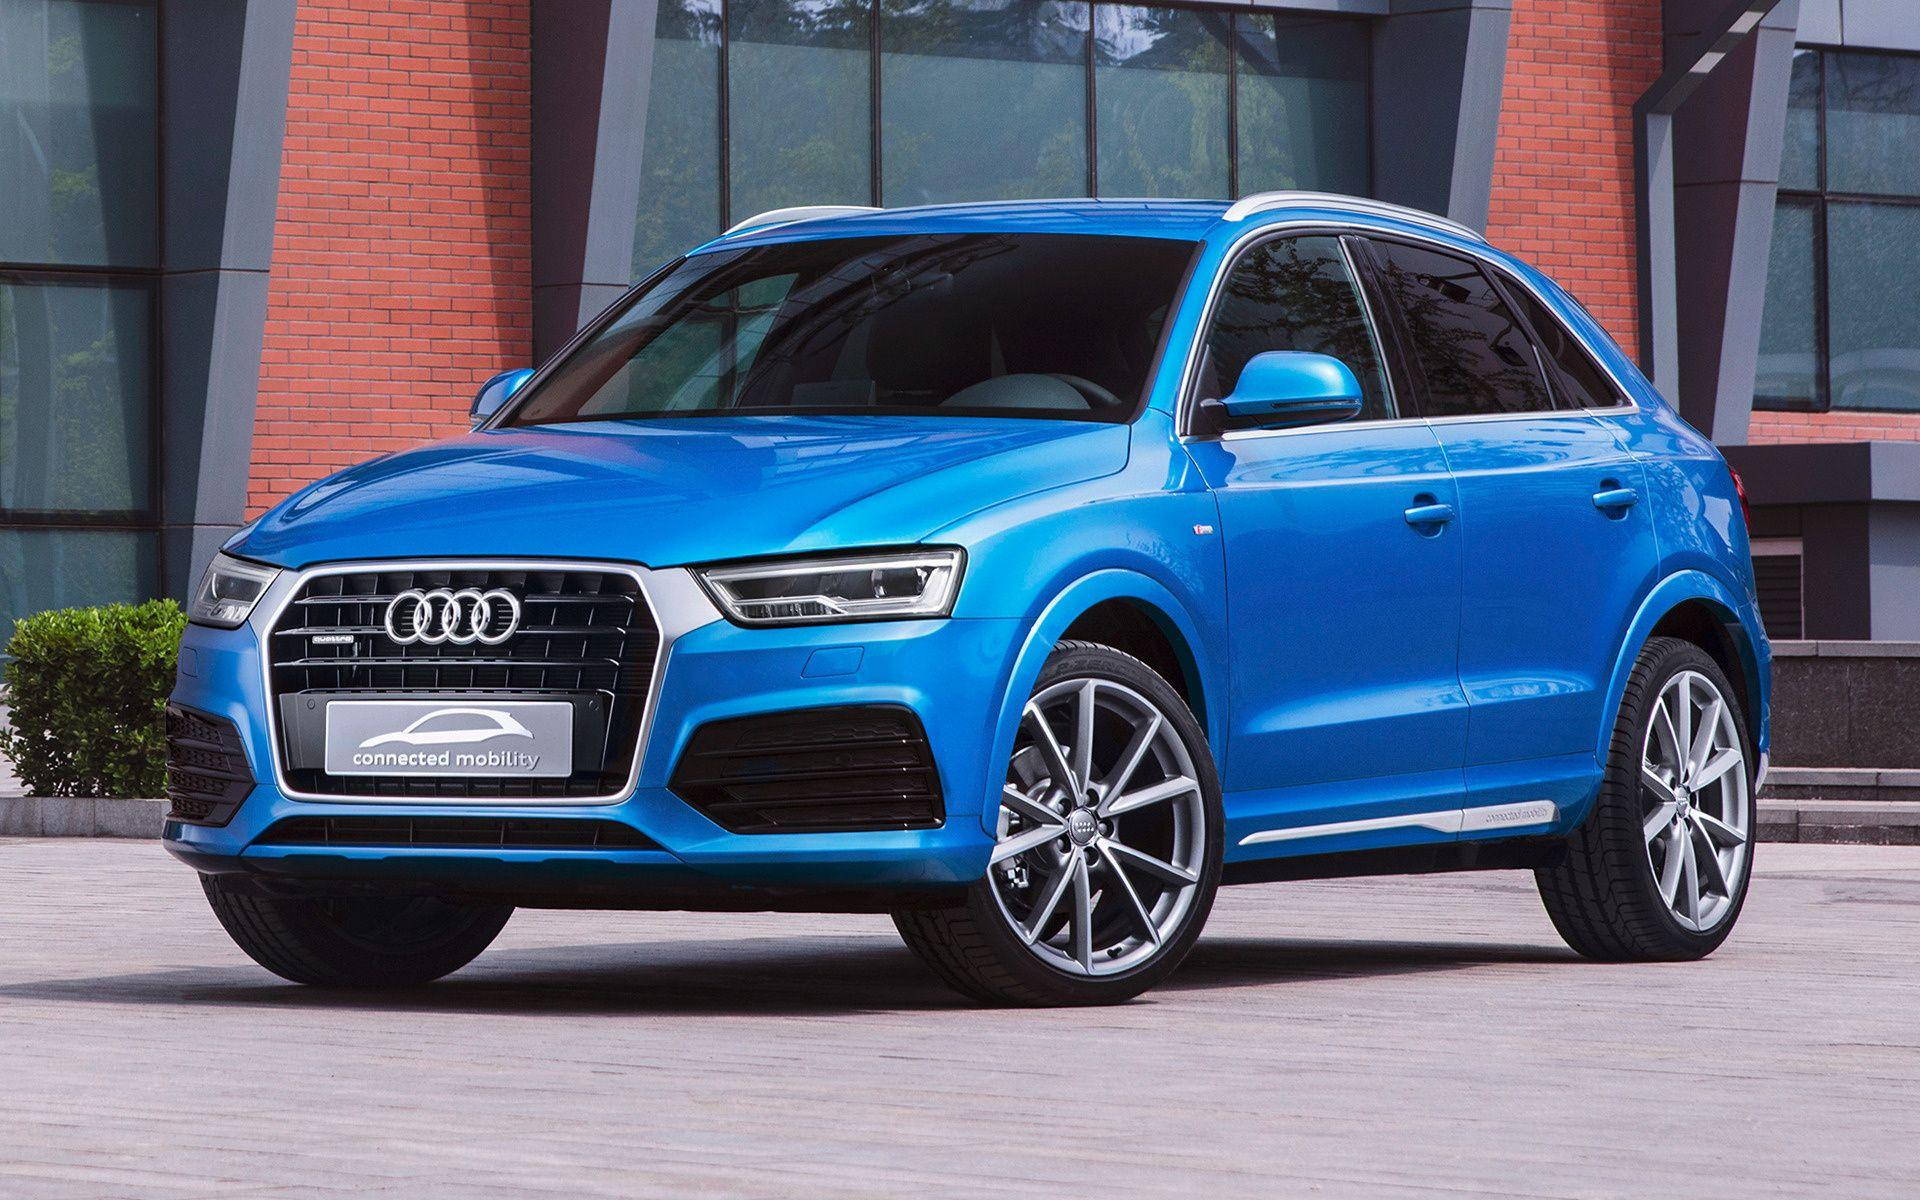 Audi Q3 connected mobility concept (2016) Wallpapers and HD Images ...